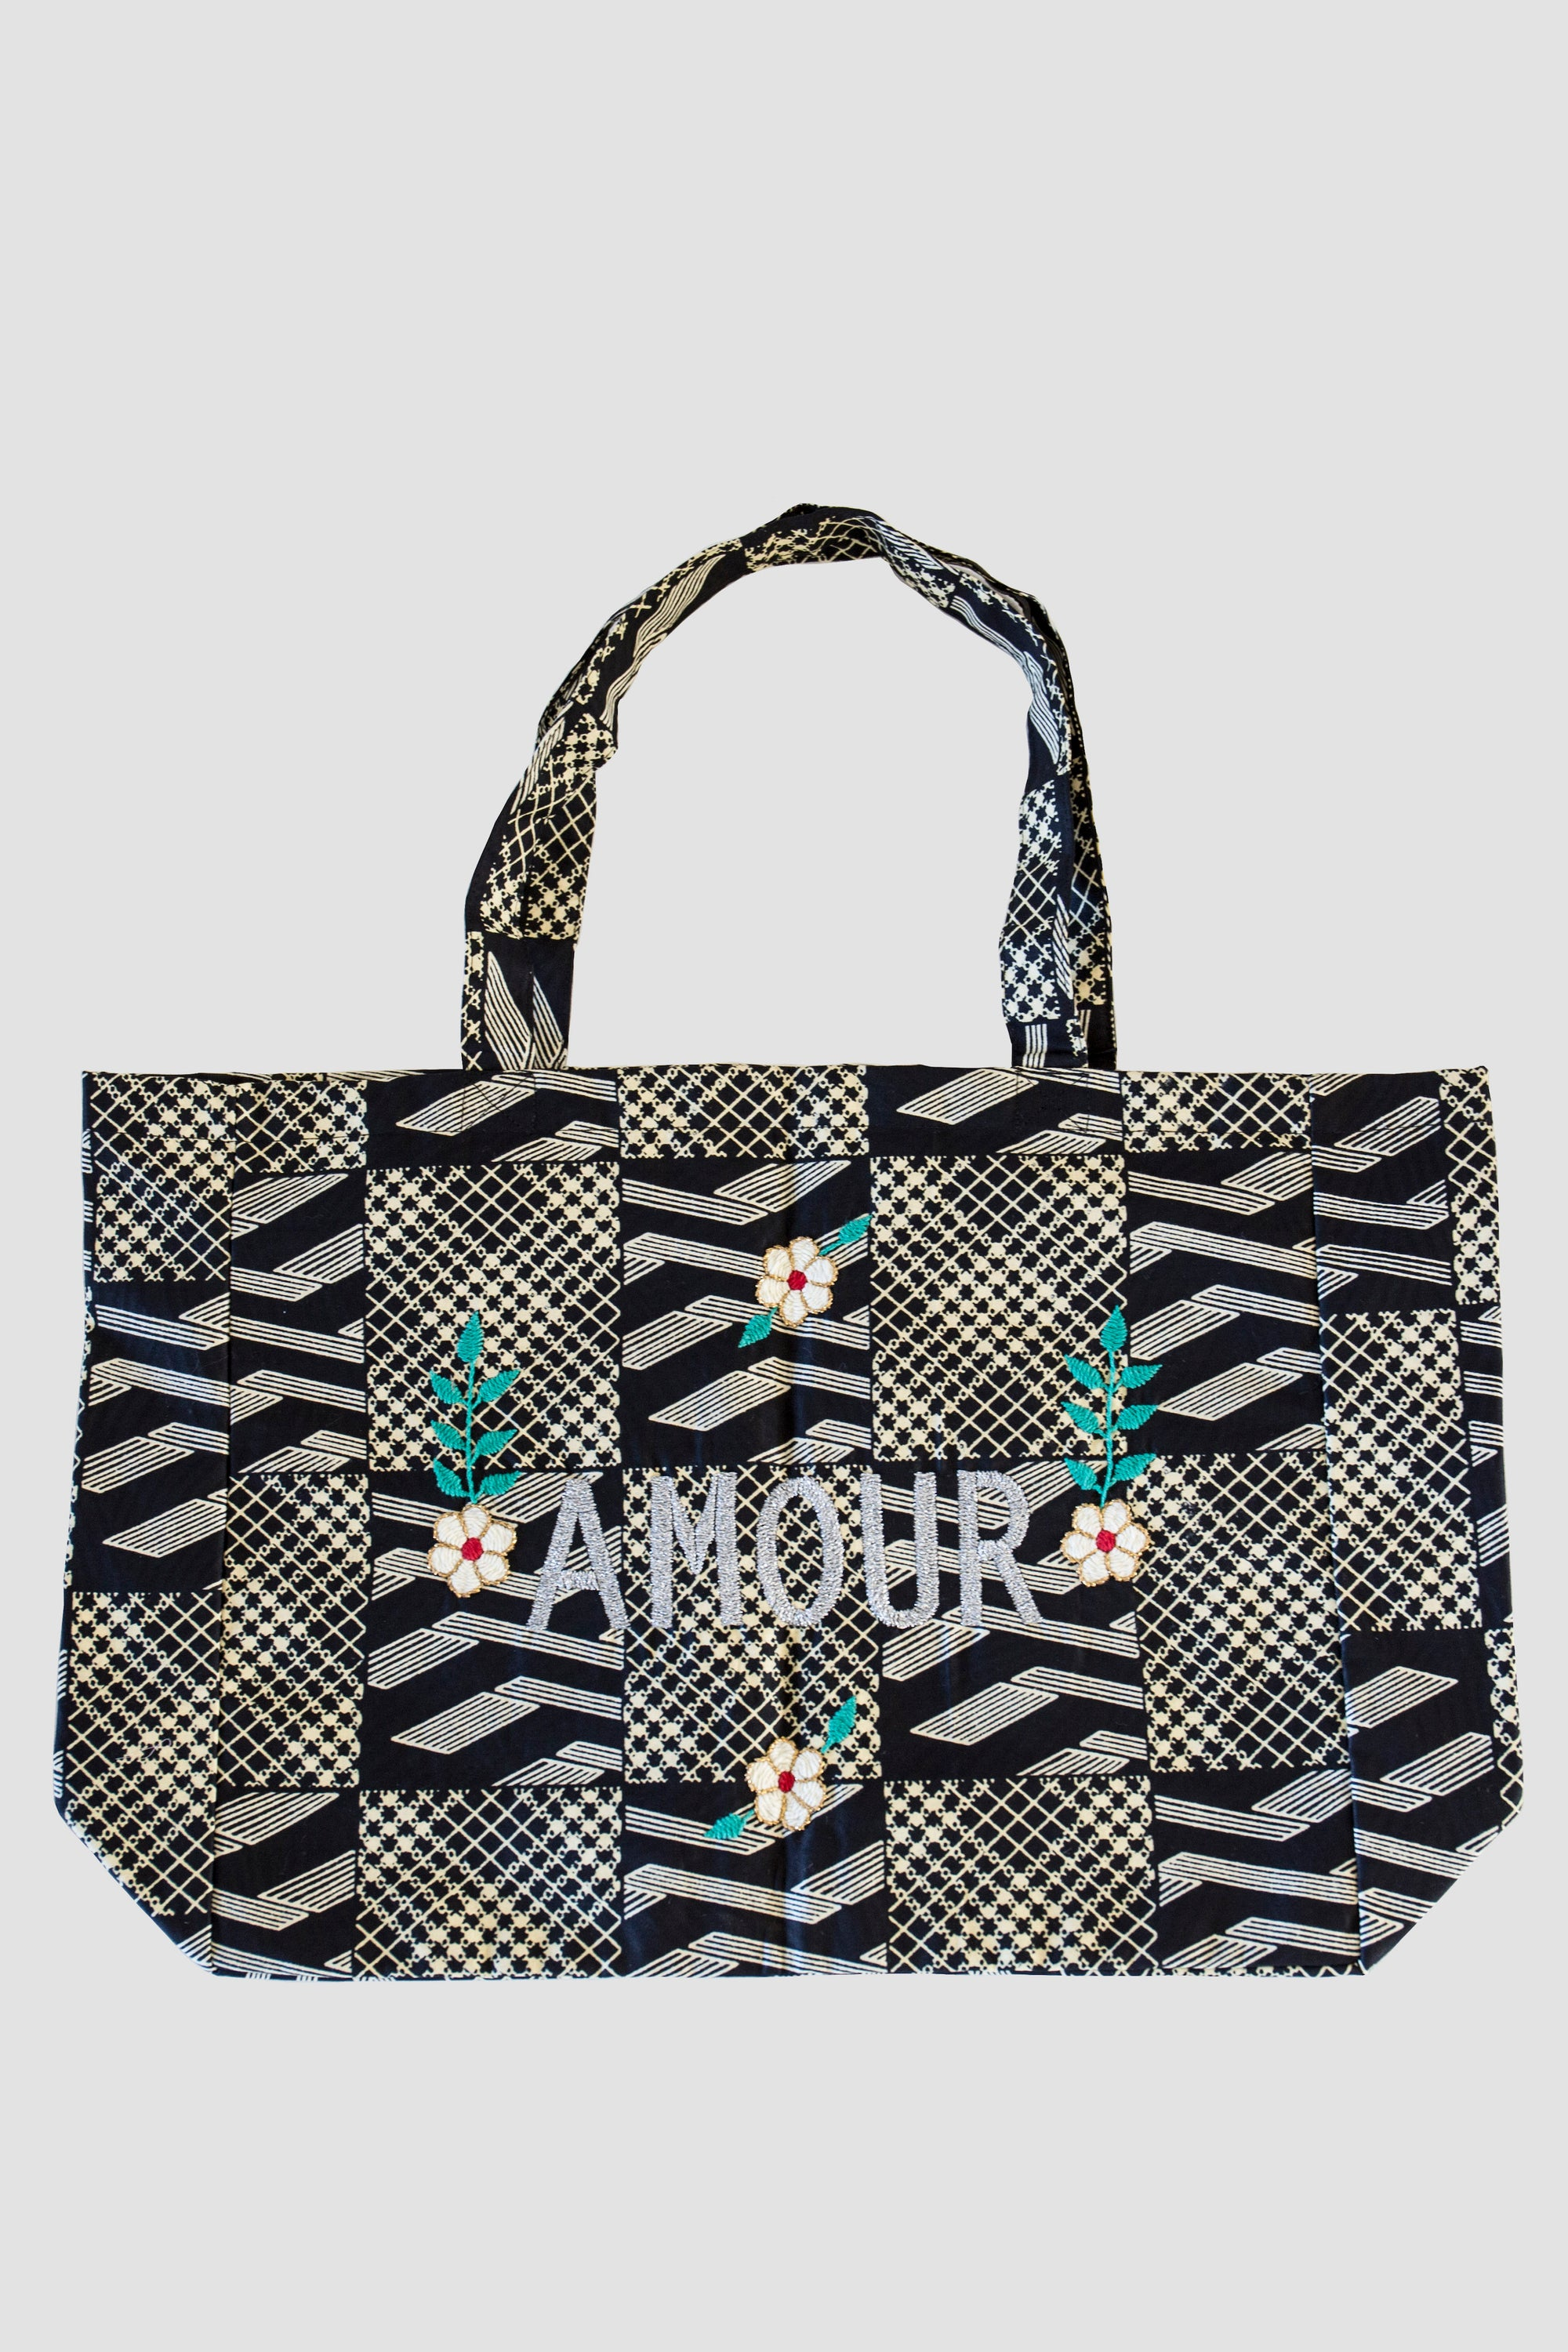 Amour - Kossiwa Bag 04